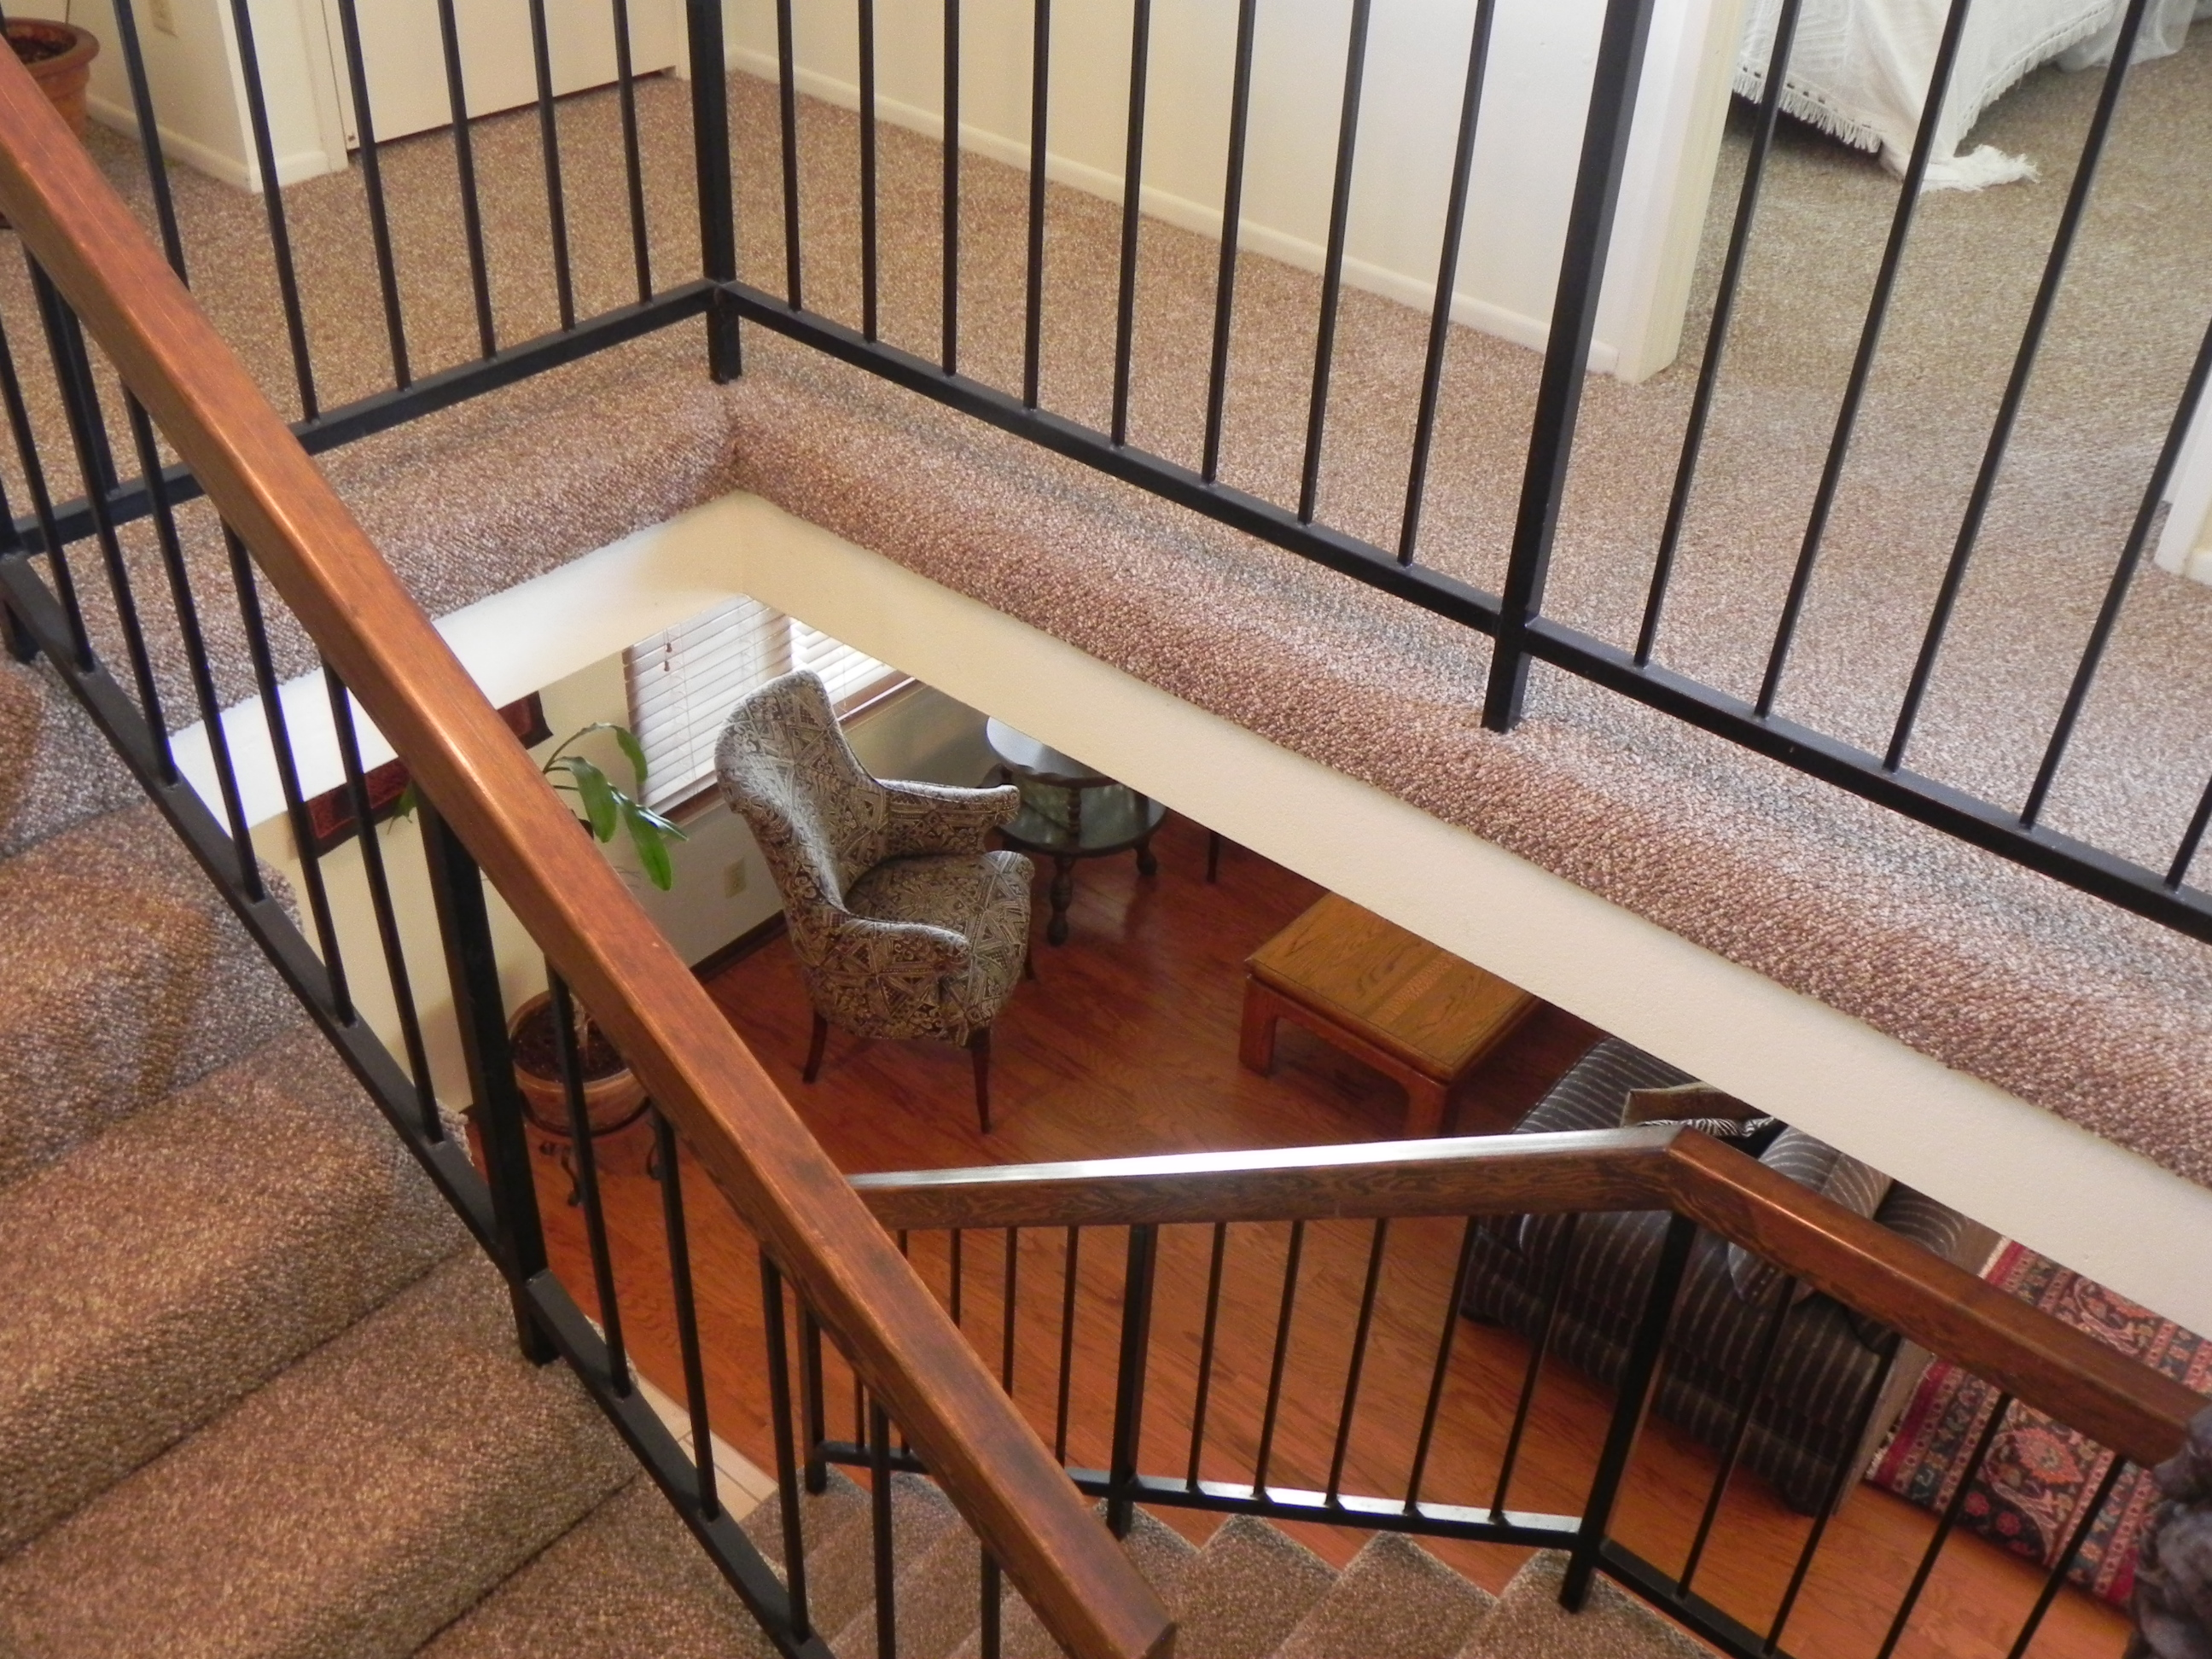 Upstairs 3400 Keel ave home for sale in Via Marina Oxnard by David Tovar